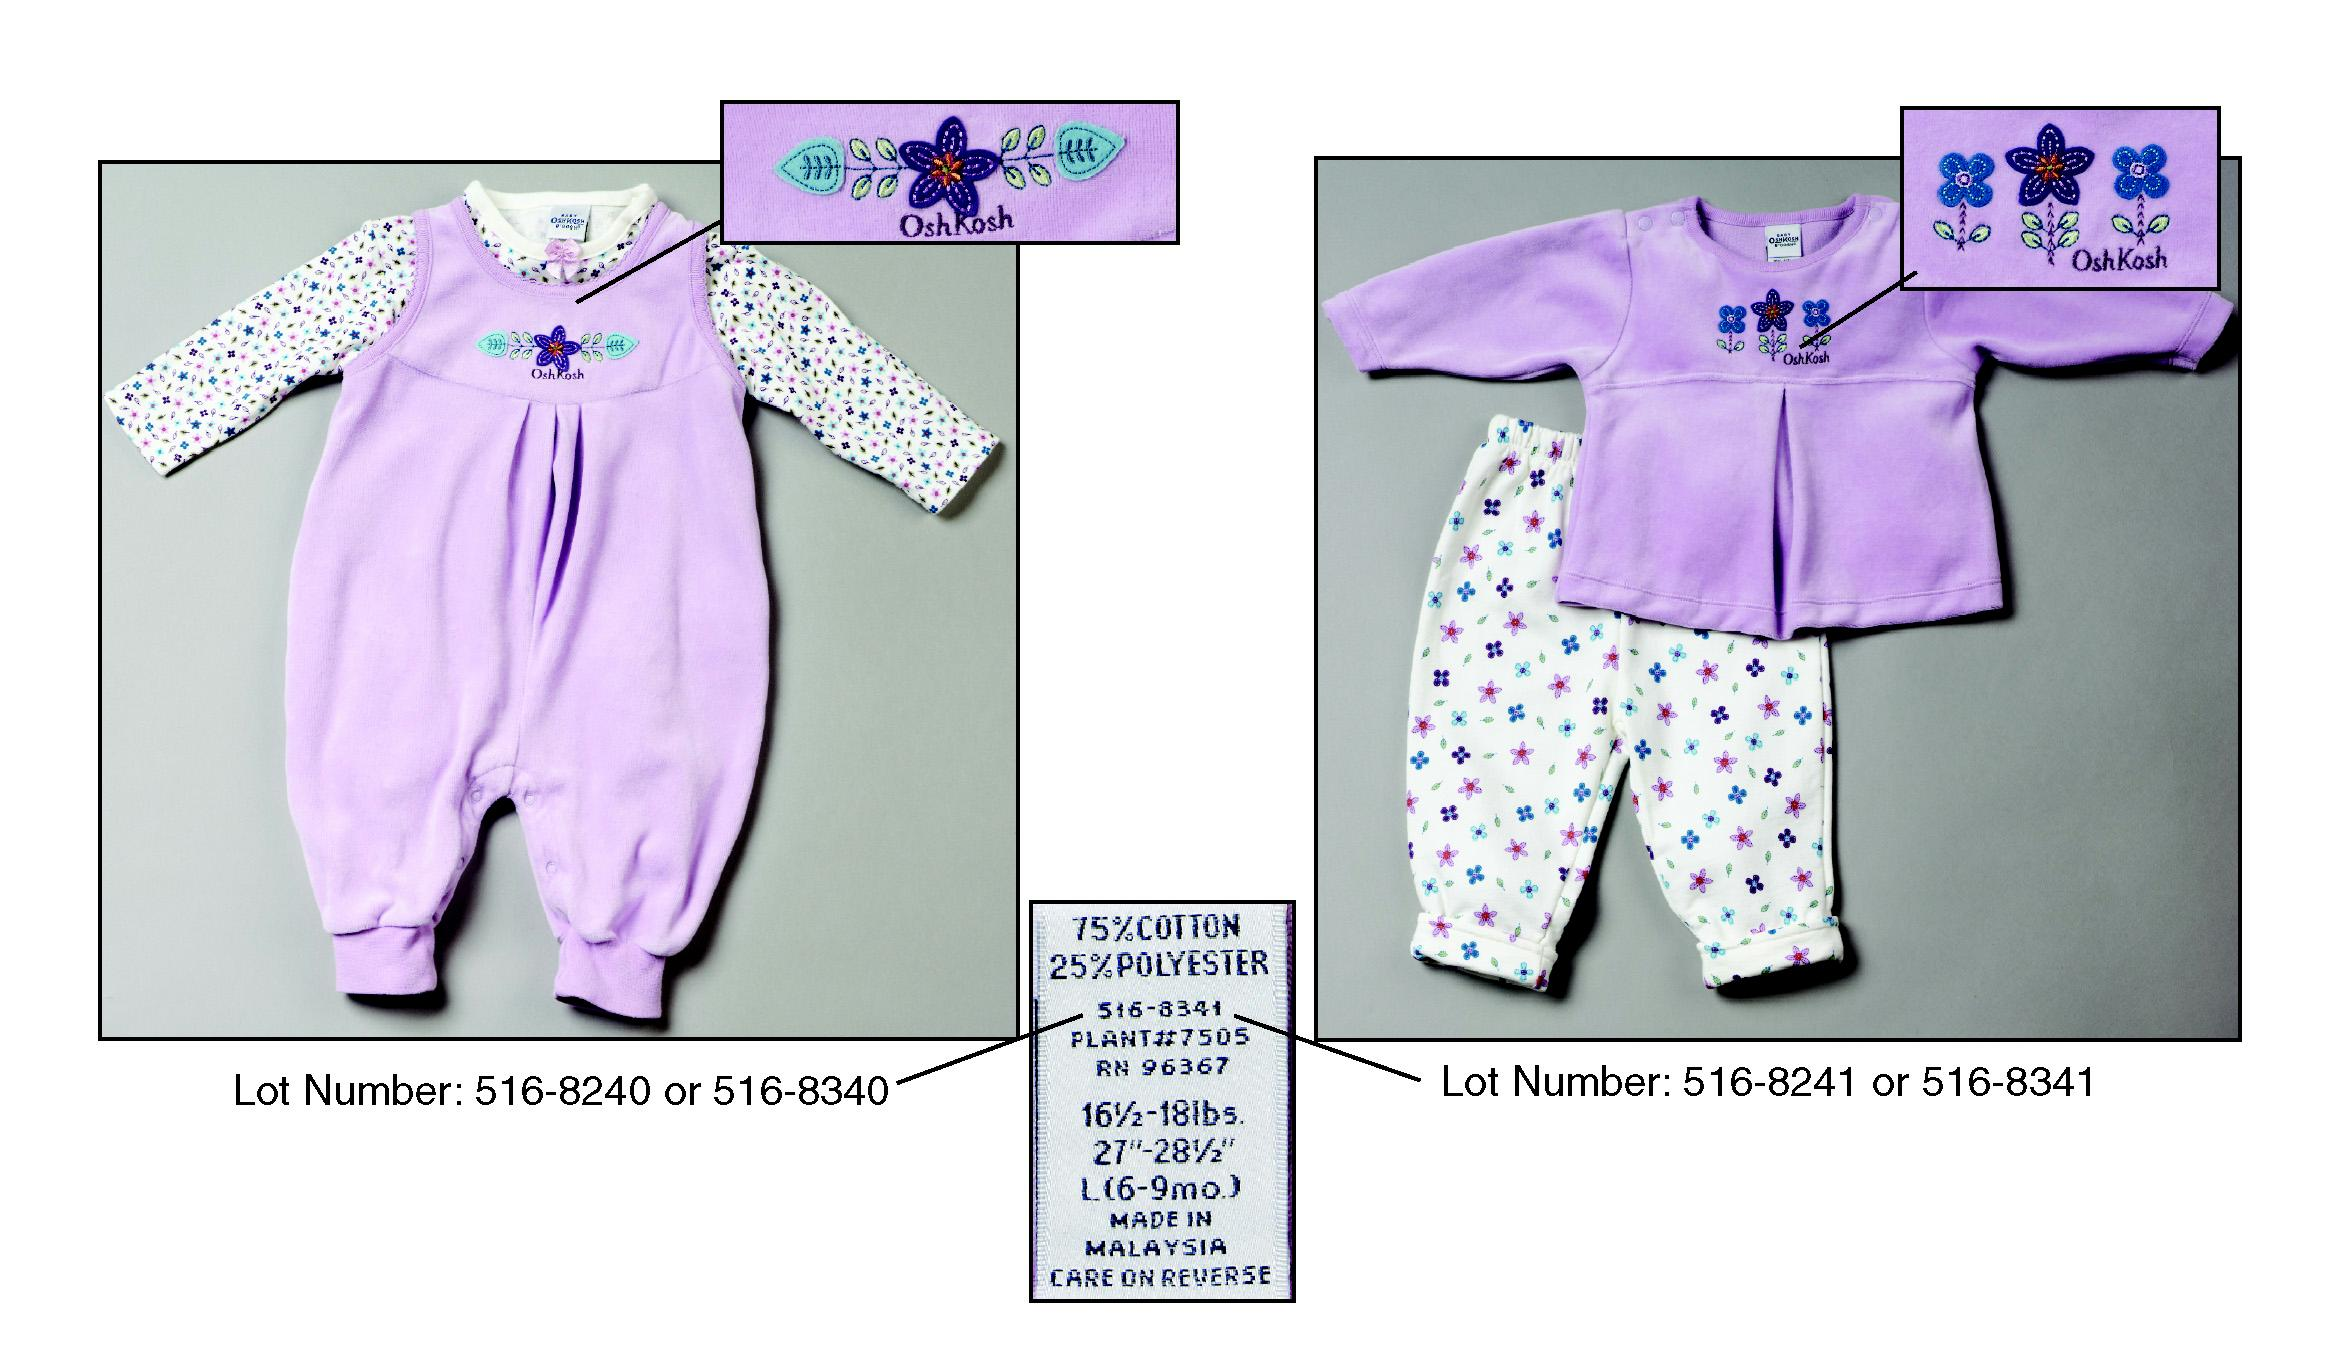 Picture of Recalled Garments